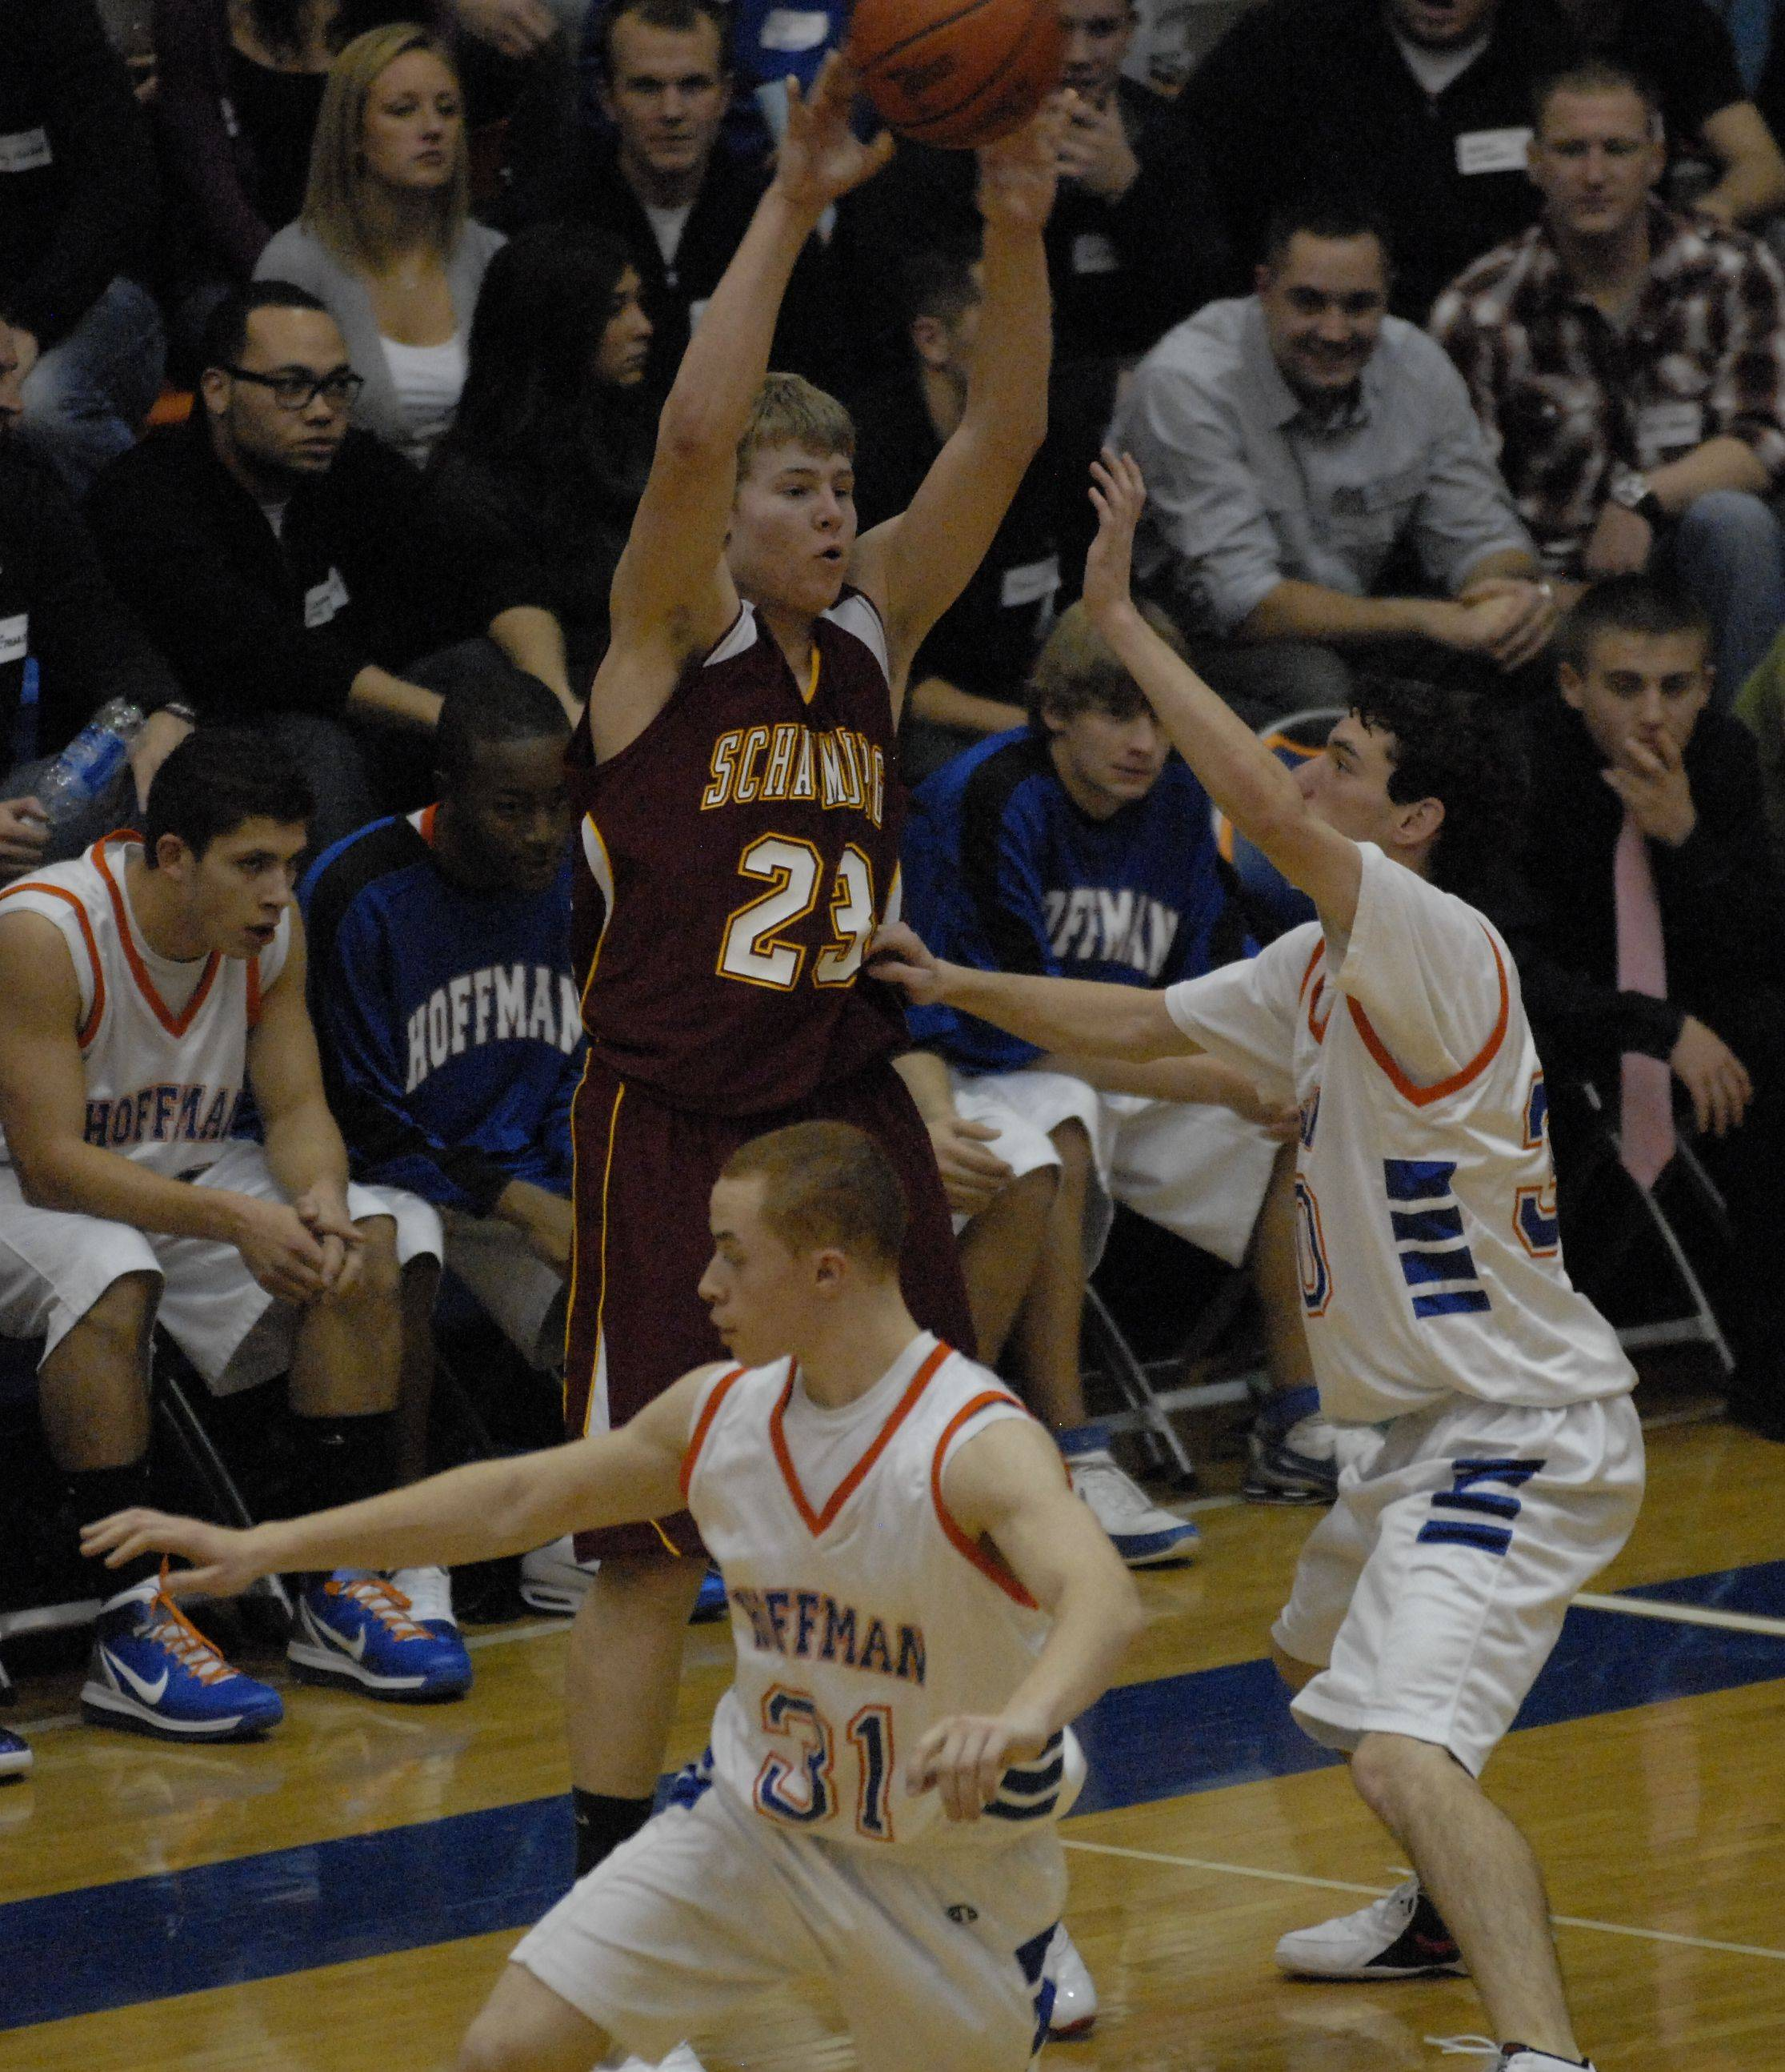 Sophomore Kyle Bolger (23) has Schaumburg looking to continue another upset-filled run against New Trier in tonight's Evanston regional championship.